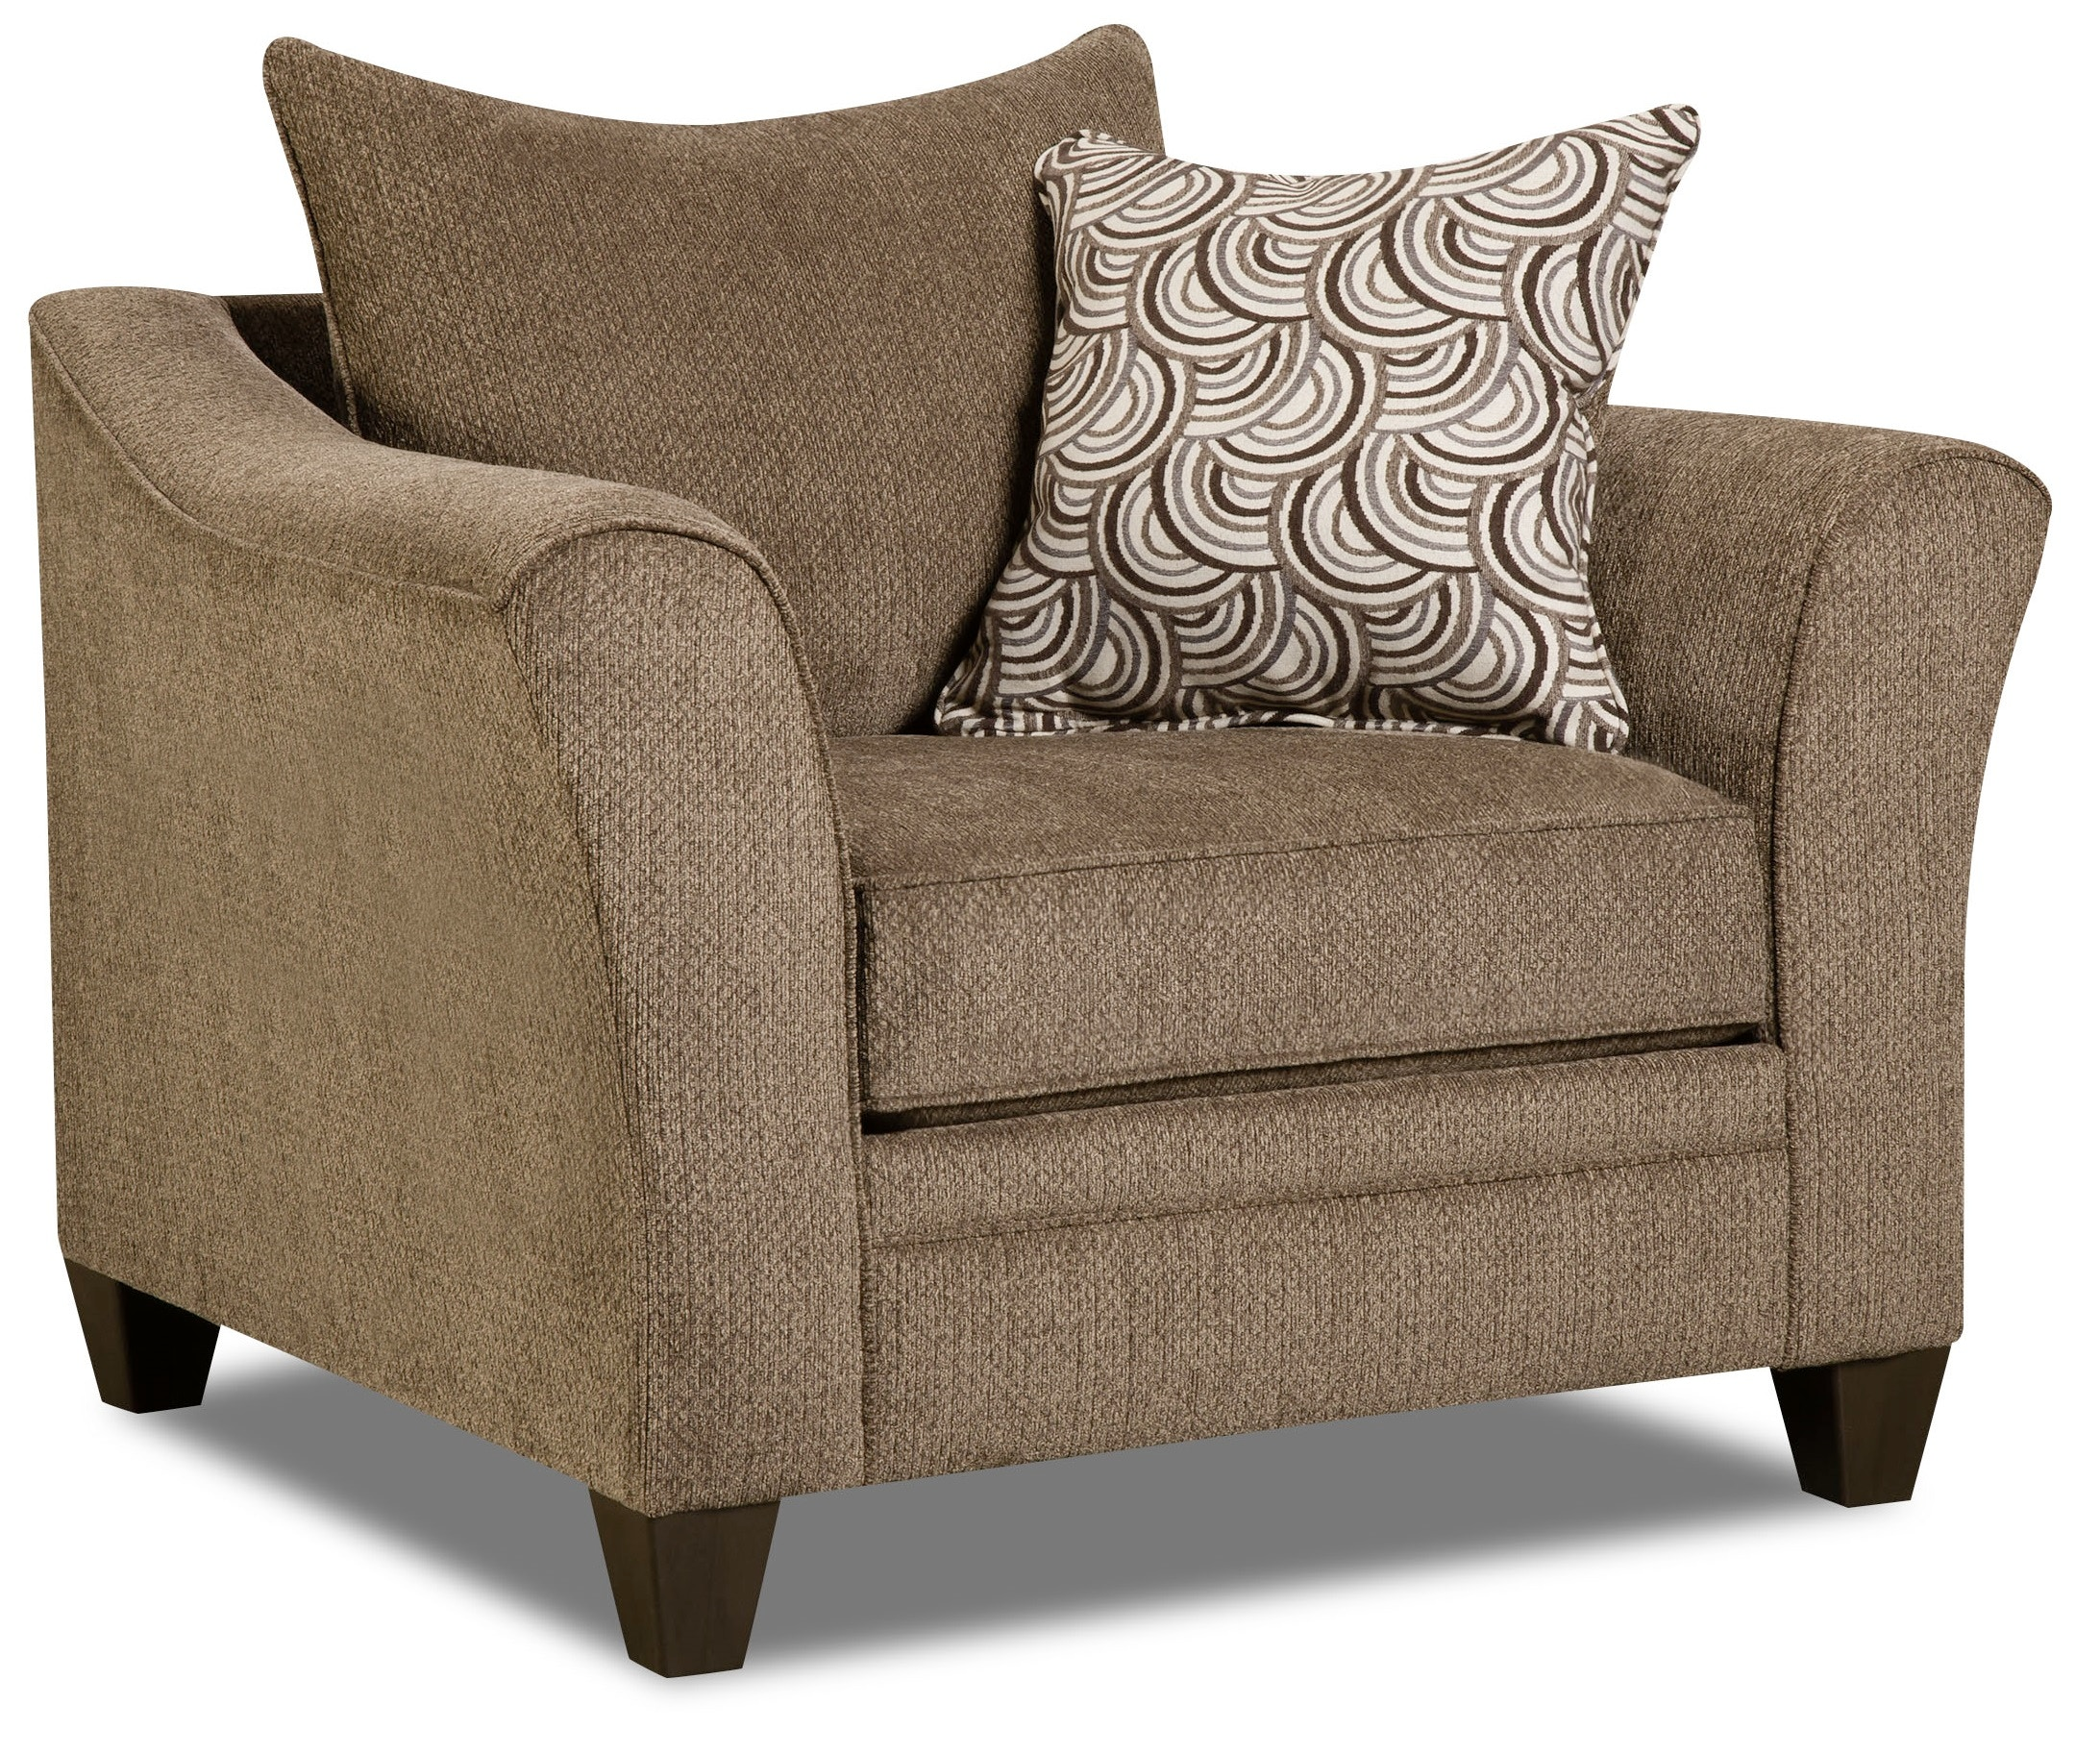 Albany Chair   TRUFFLE ST:502030